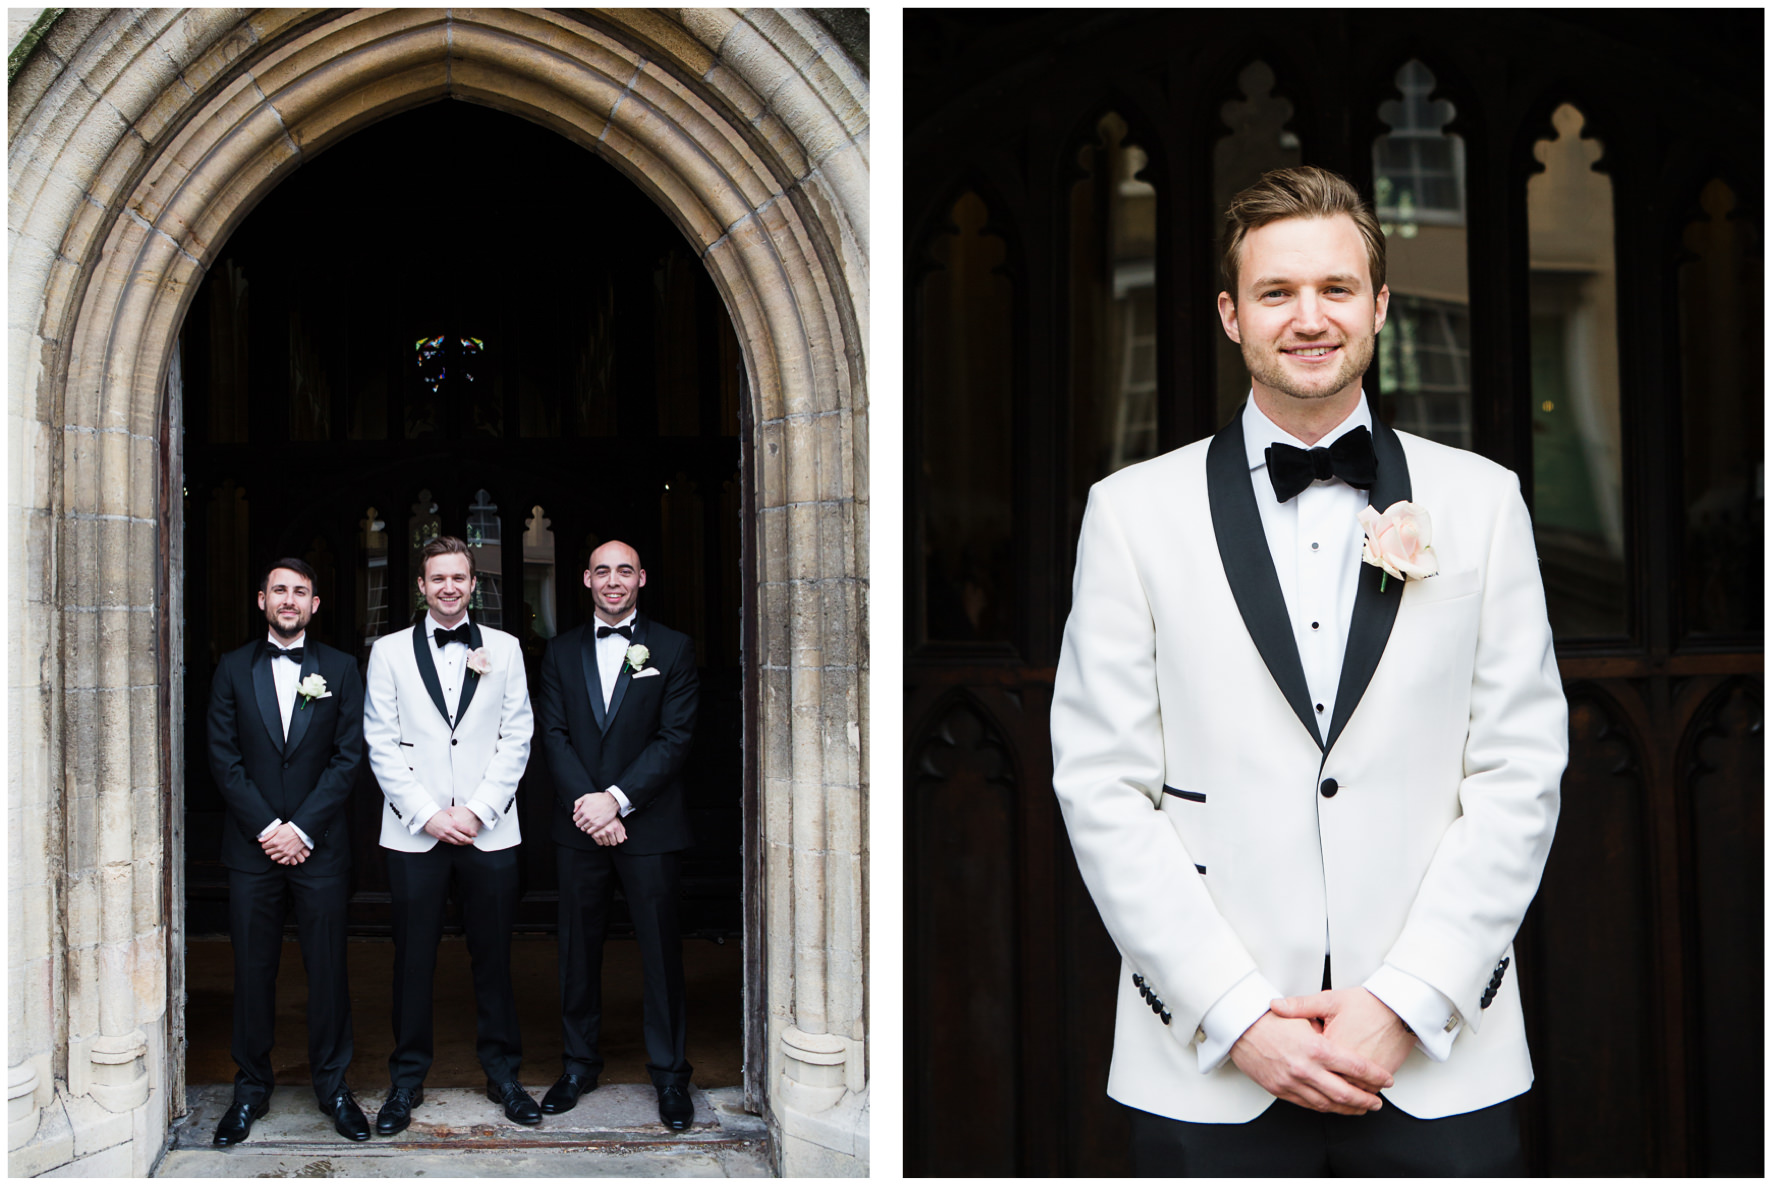 Lucy Davenport Photography, Katrina Otter Weddings, Chippenham Park, church wedding, groom, groomsmen, tuxedo, white tuxedo